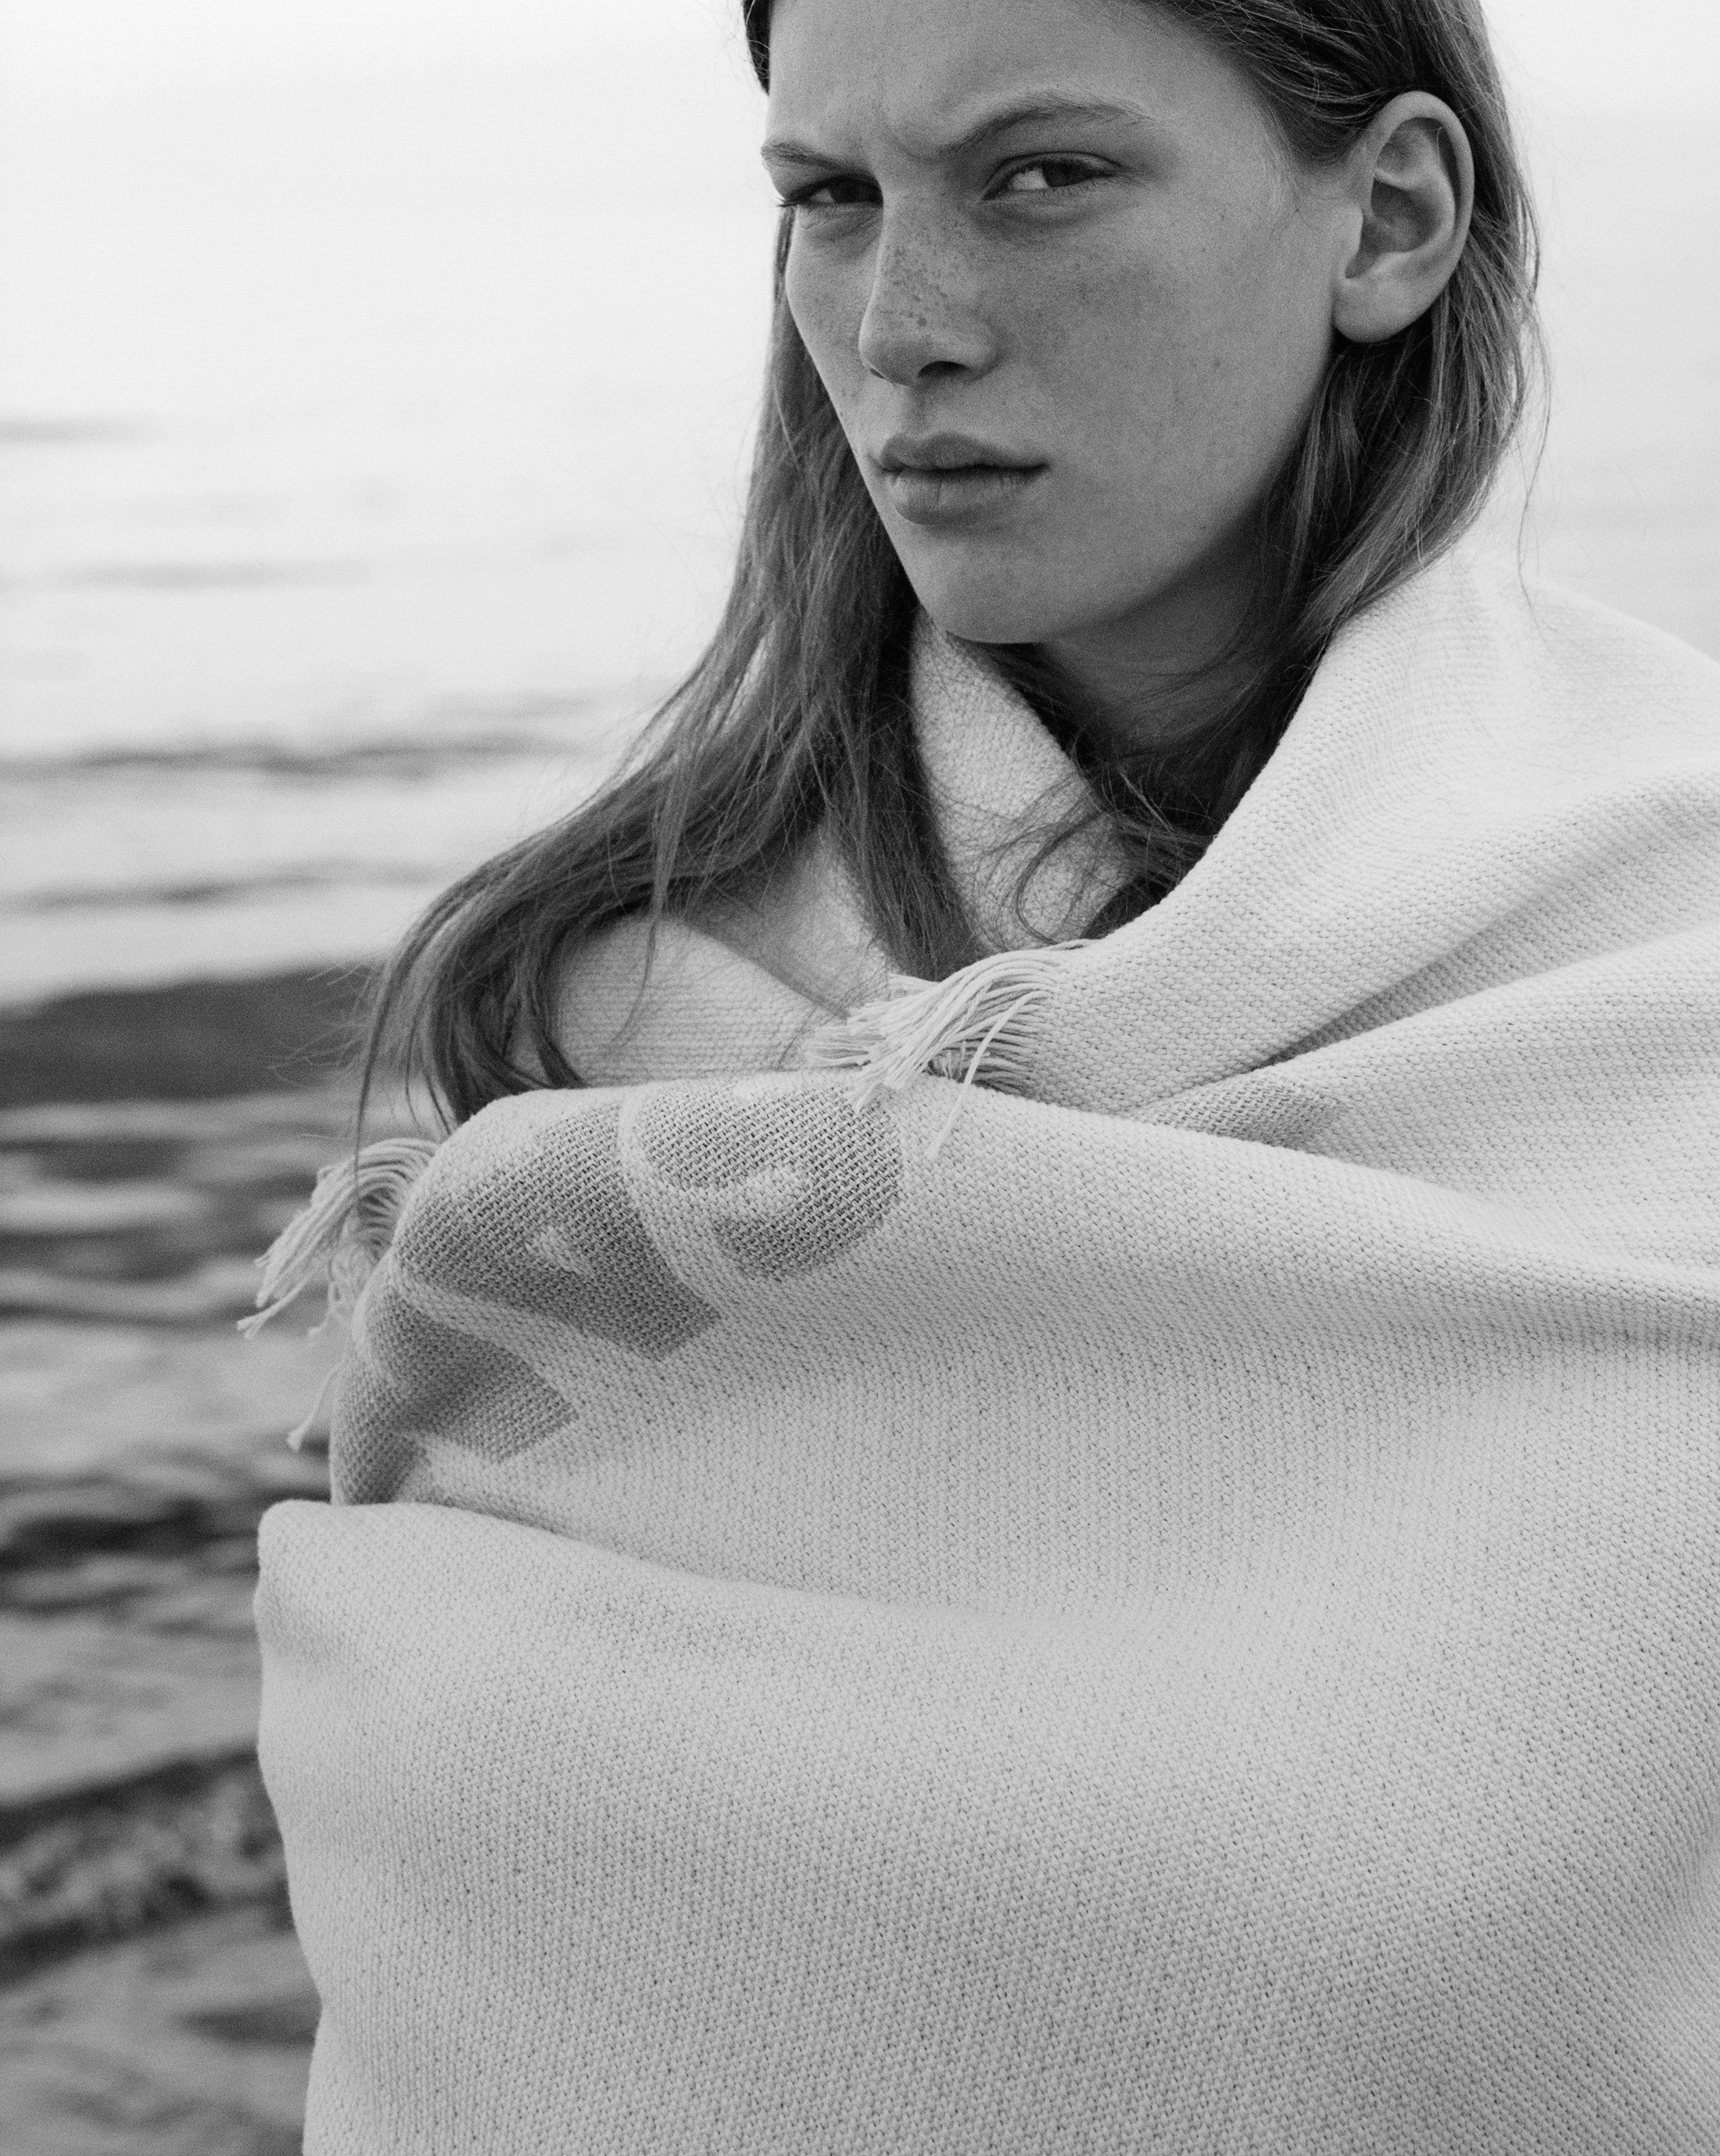 Jil Sander launches Summer Project Capsule Collection